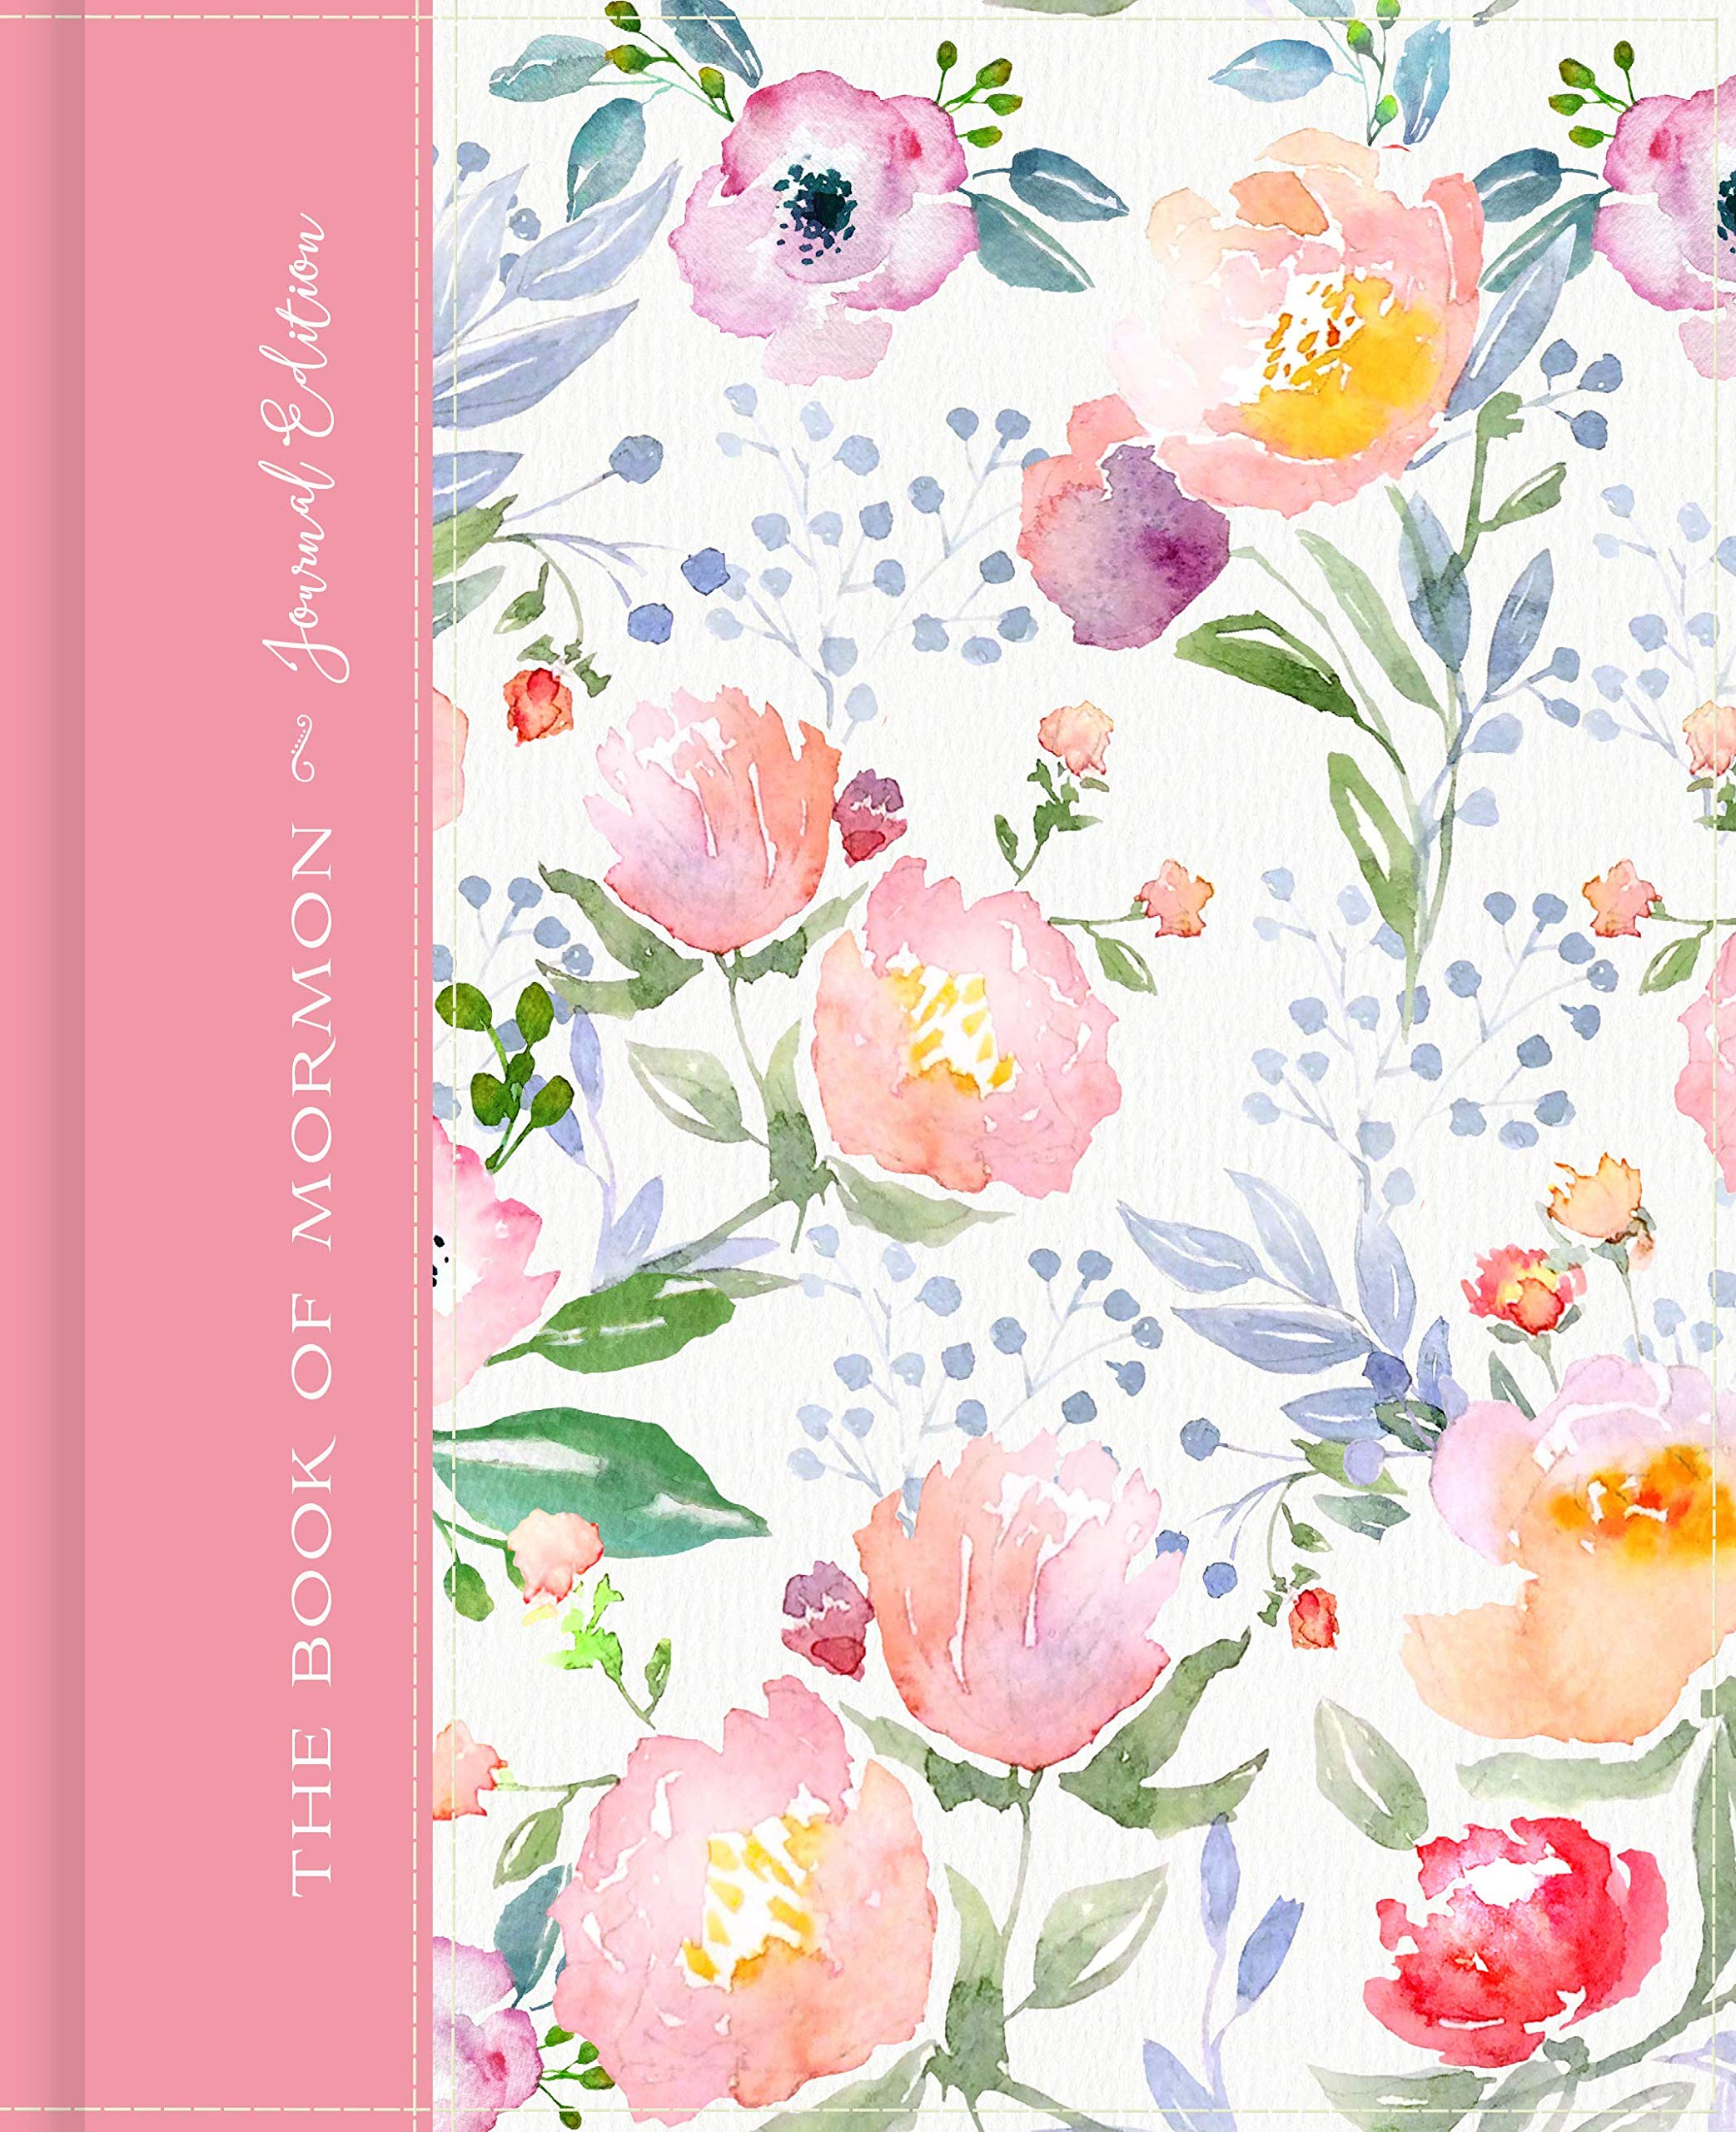 The Book of Mormon Journal Pink Floral